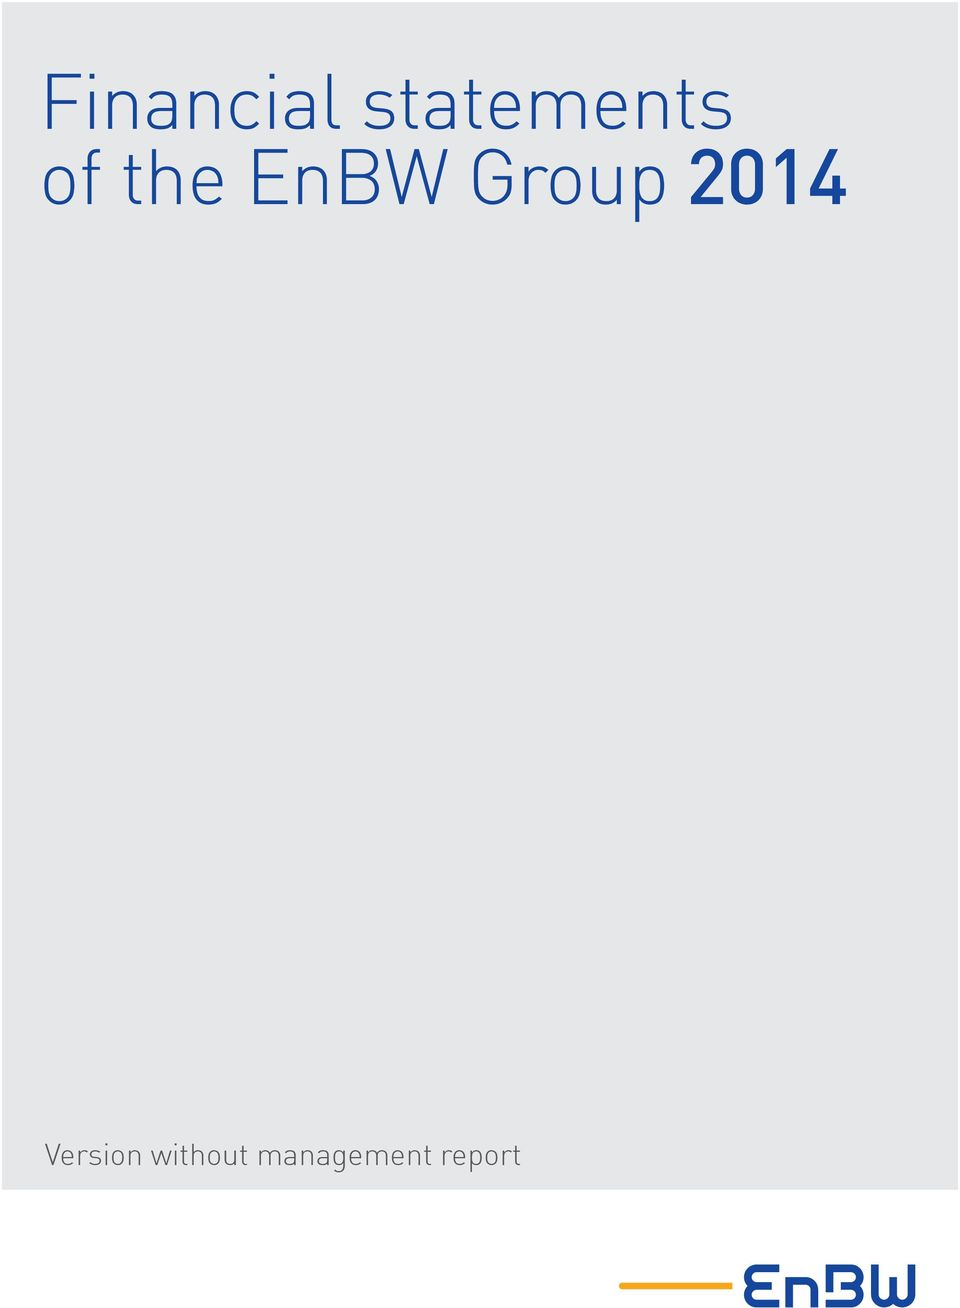 EnBW Group 204